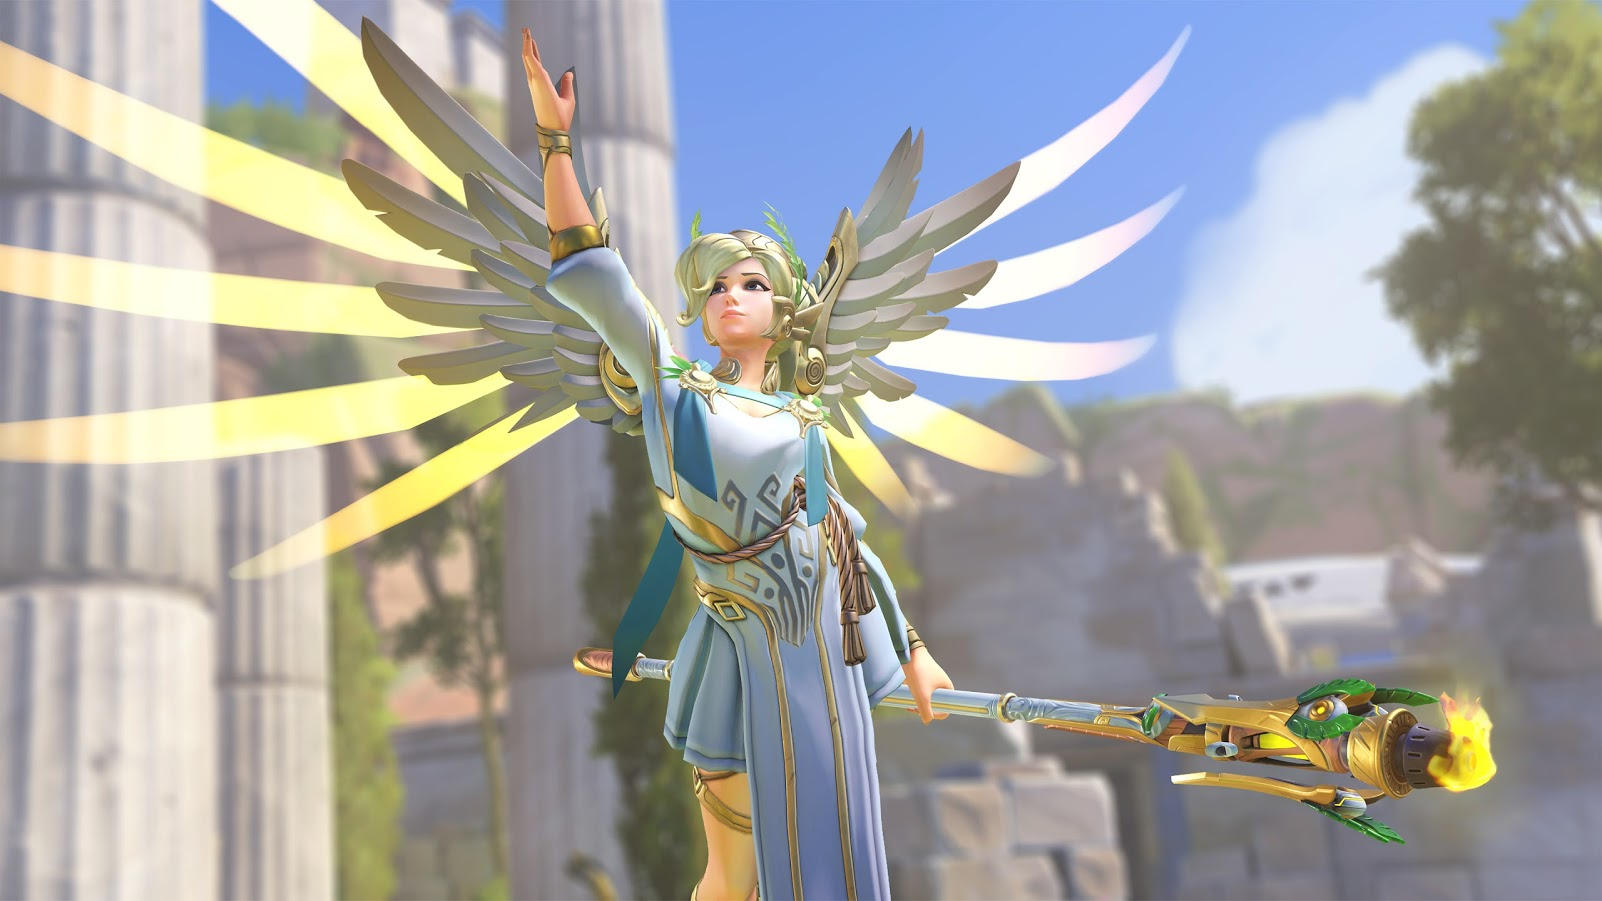 Overwatch Summer Games 2017 Mercy